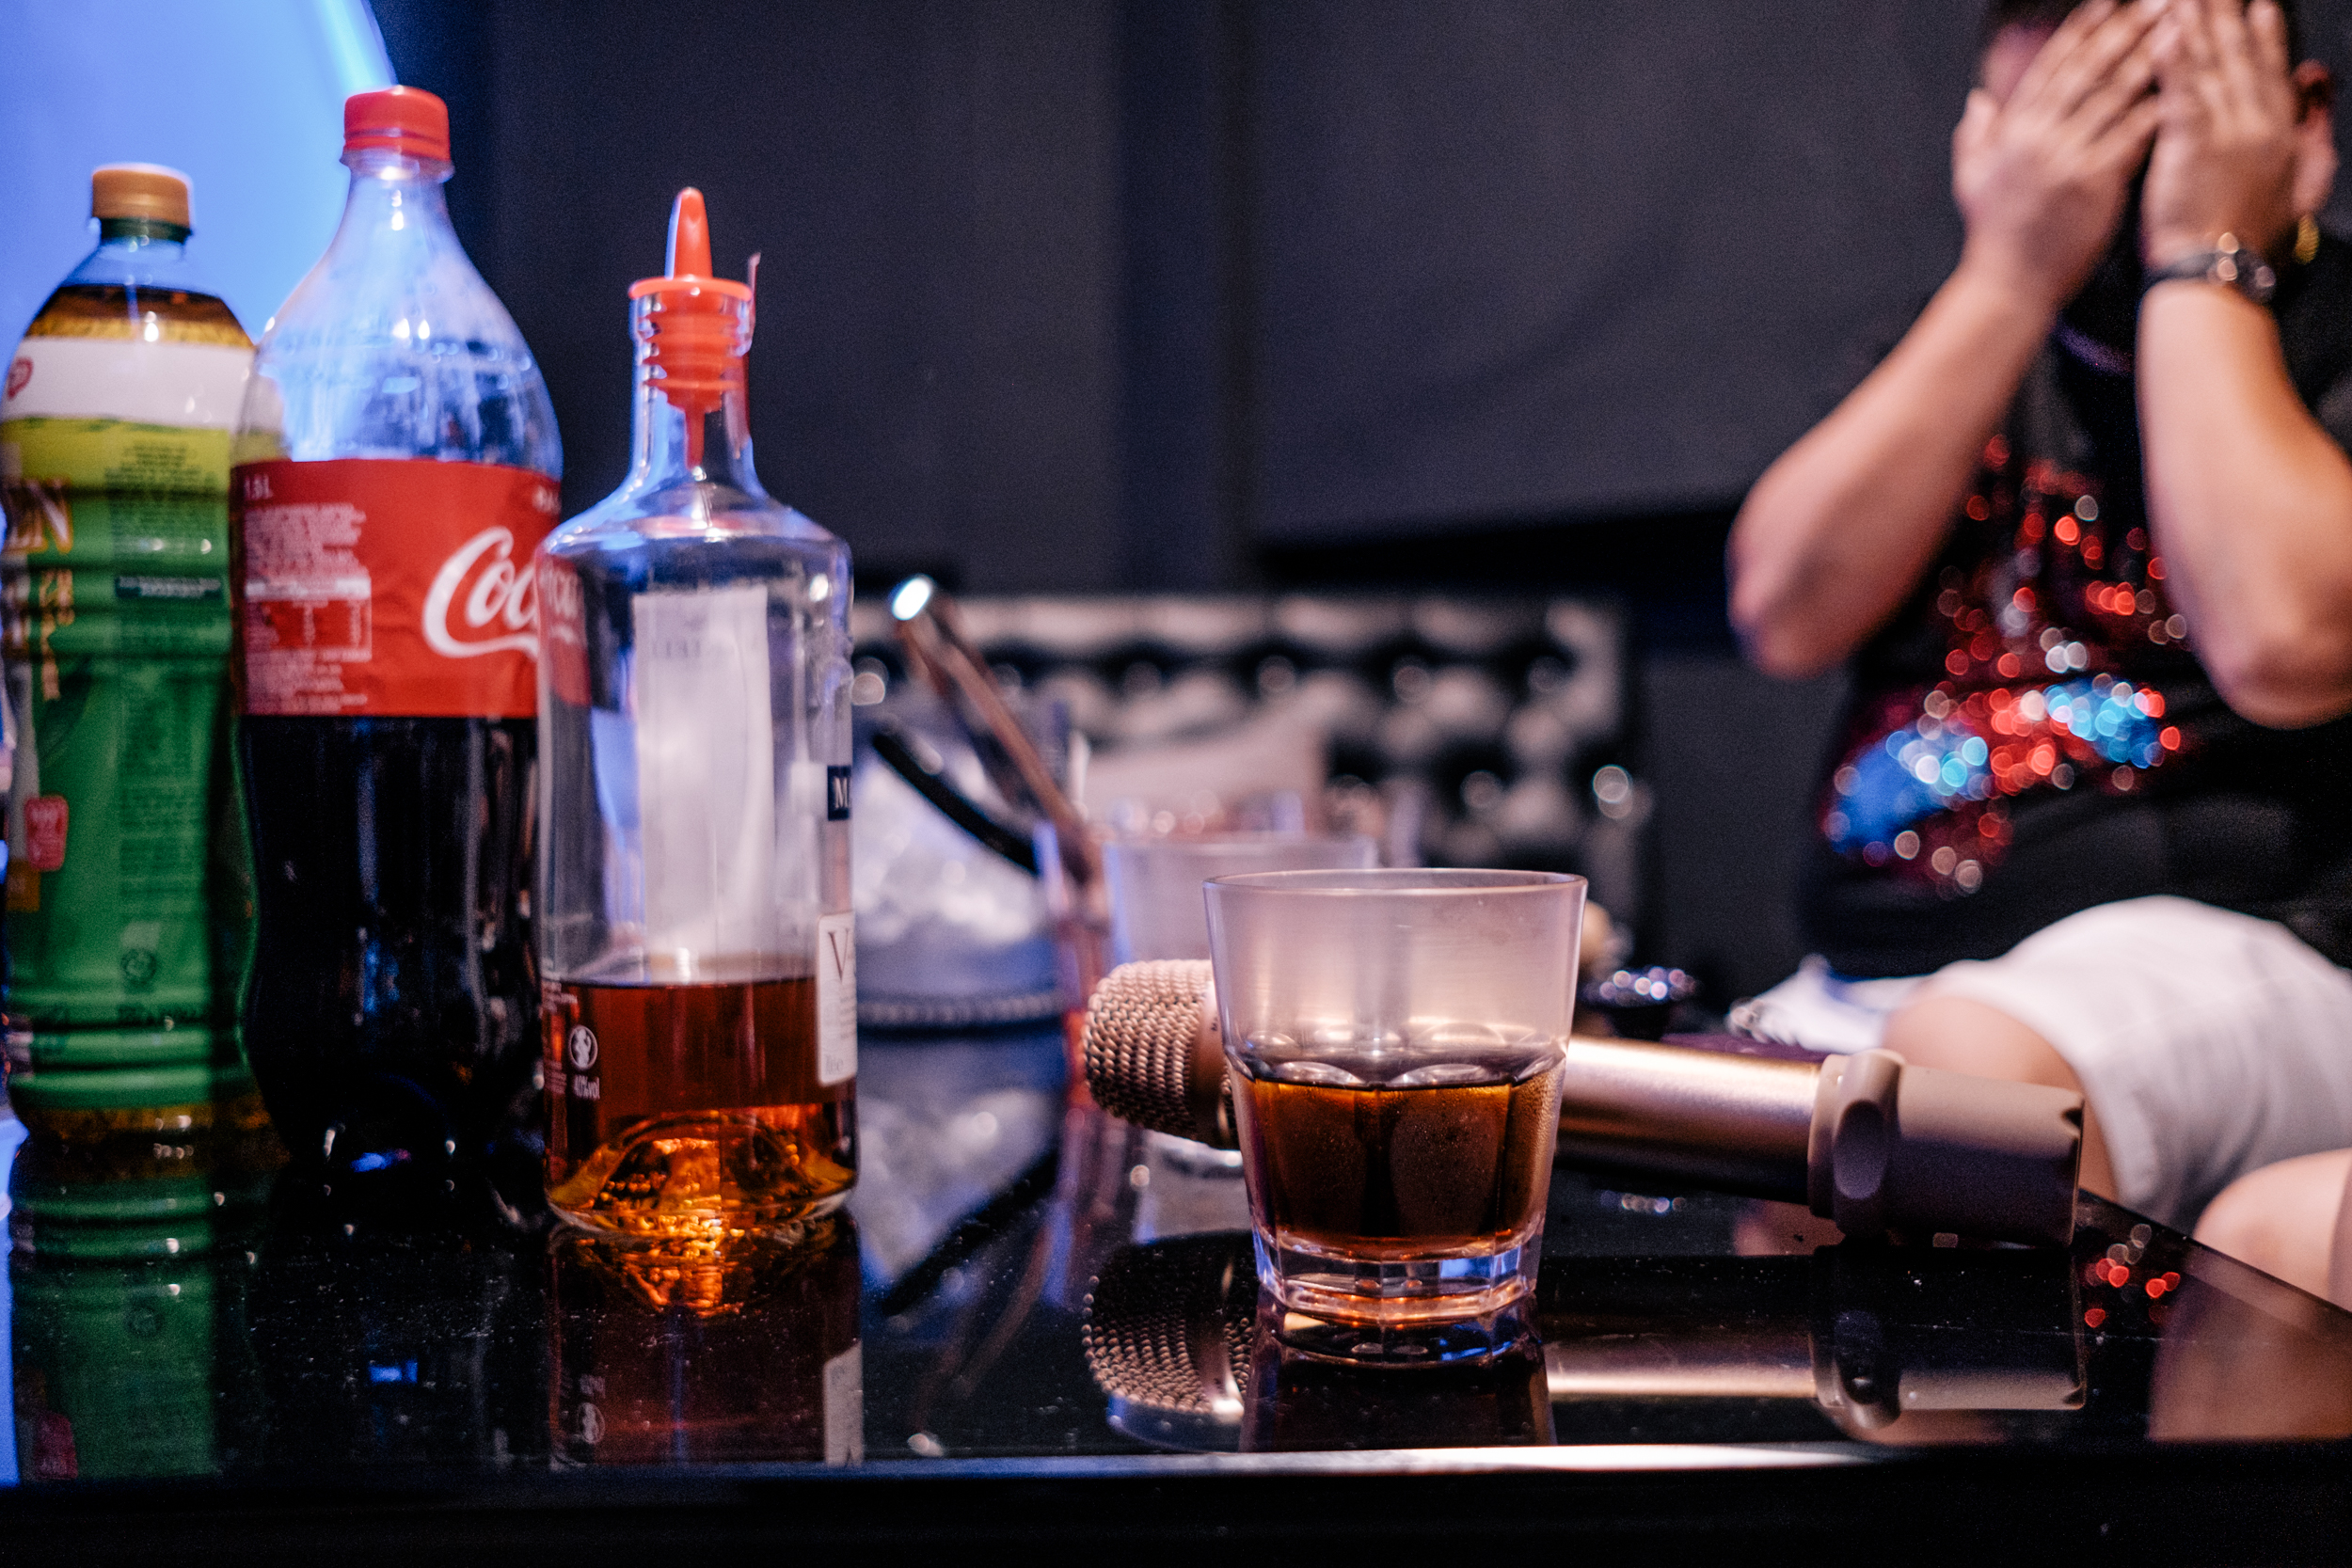 Image of the liquour and microphone on the table in the illegal KTV